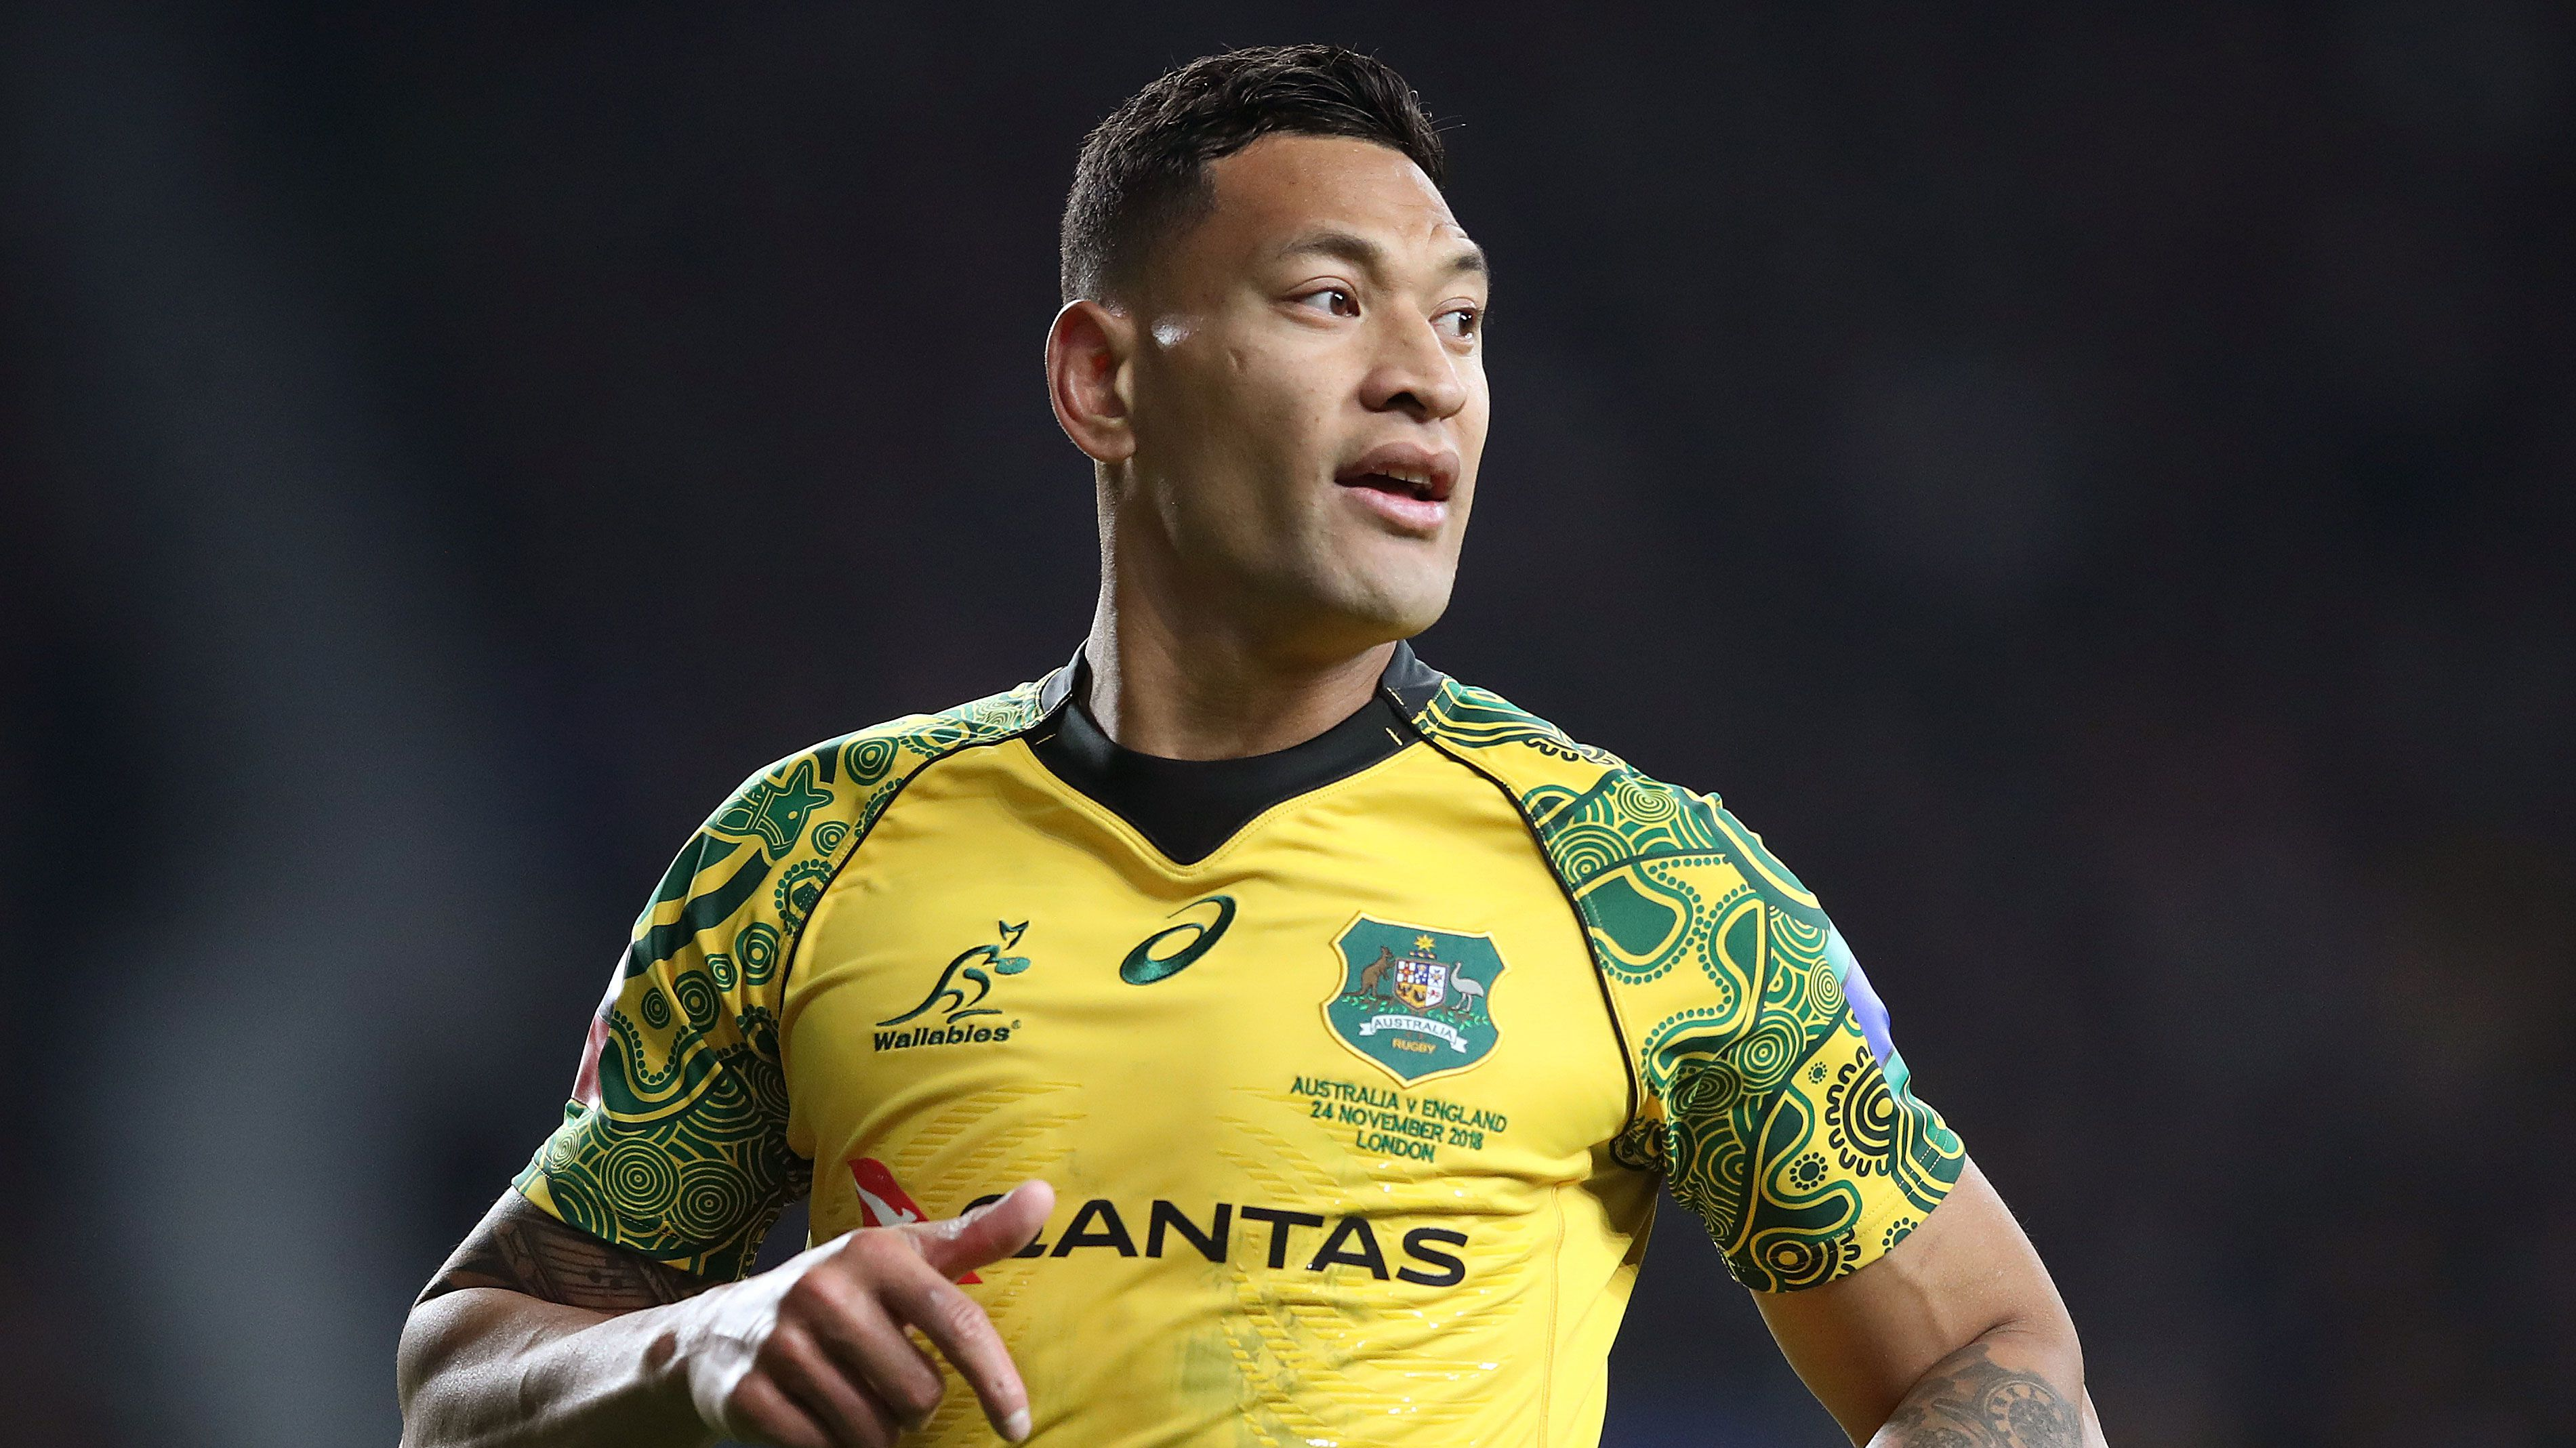 Folau sues for 'substantial' payout from Rugby Australia